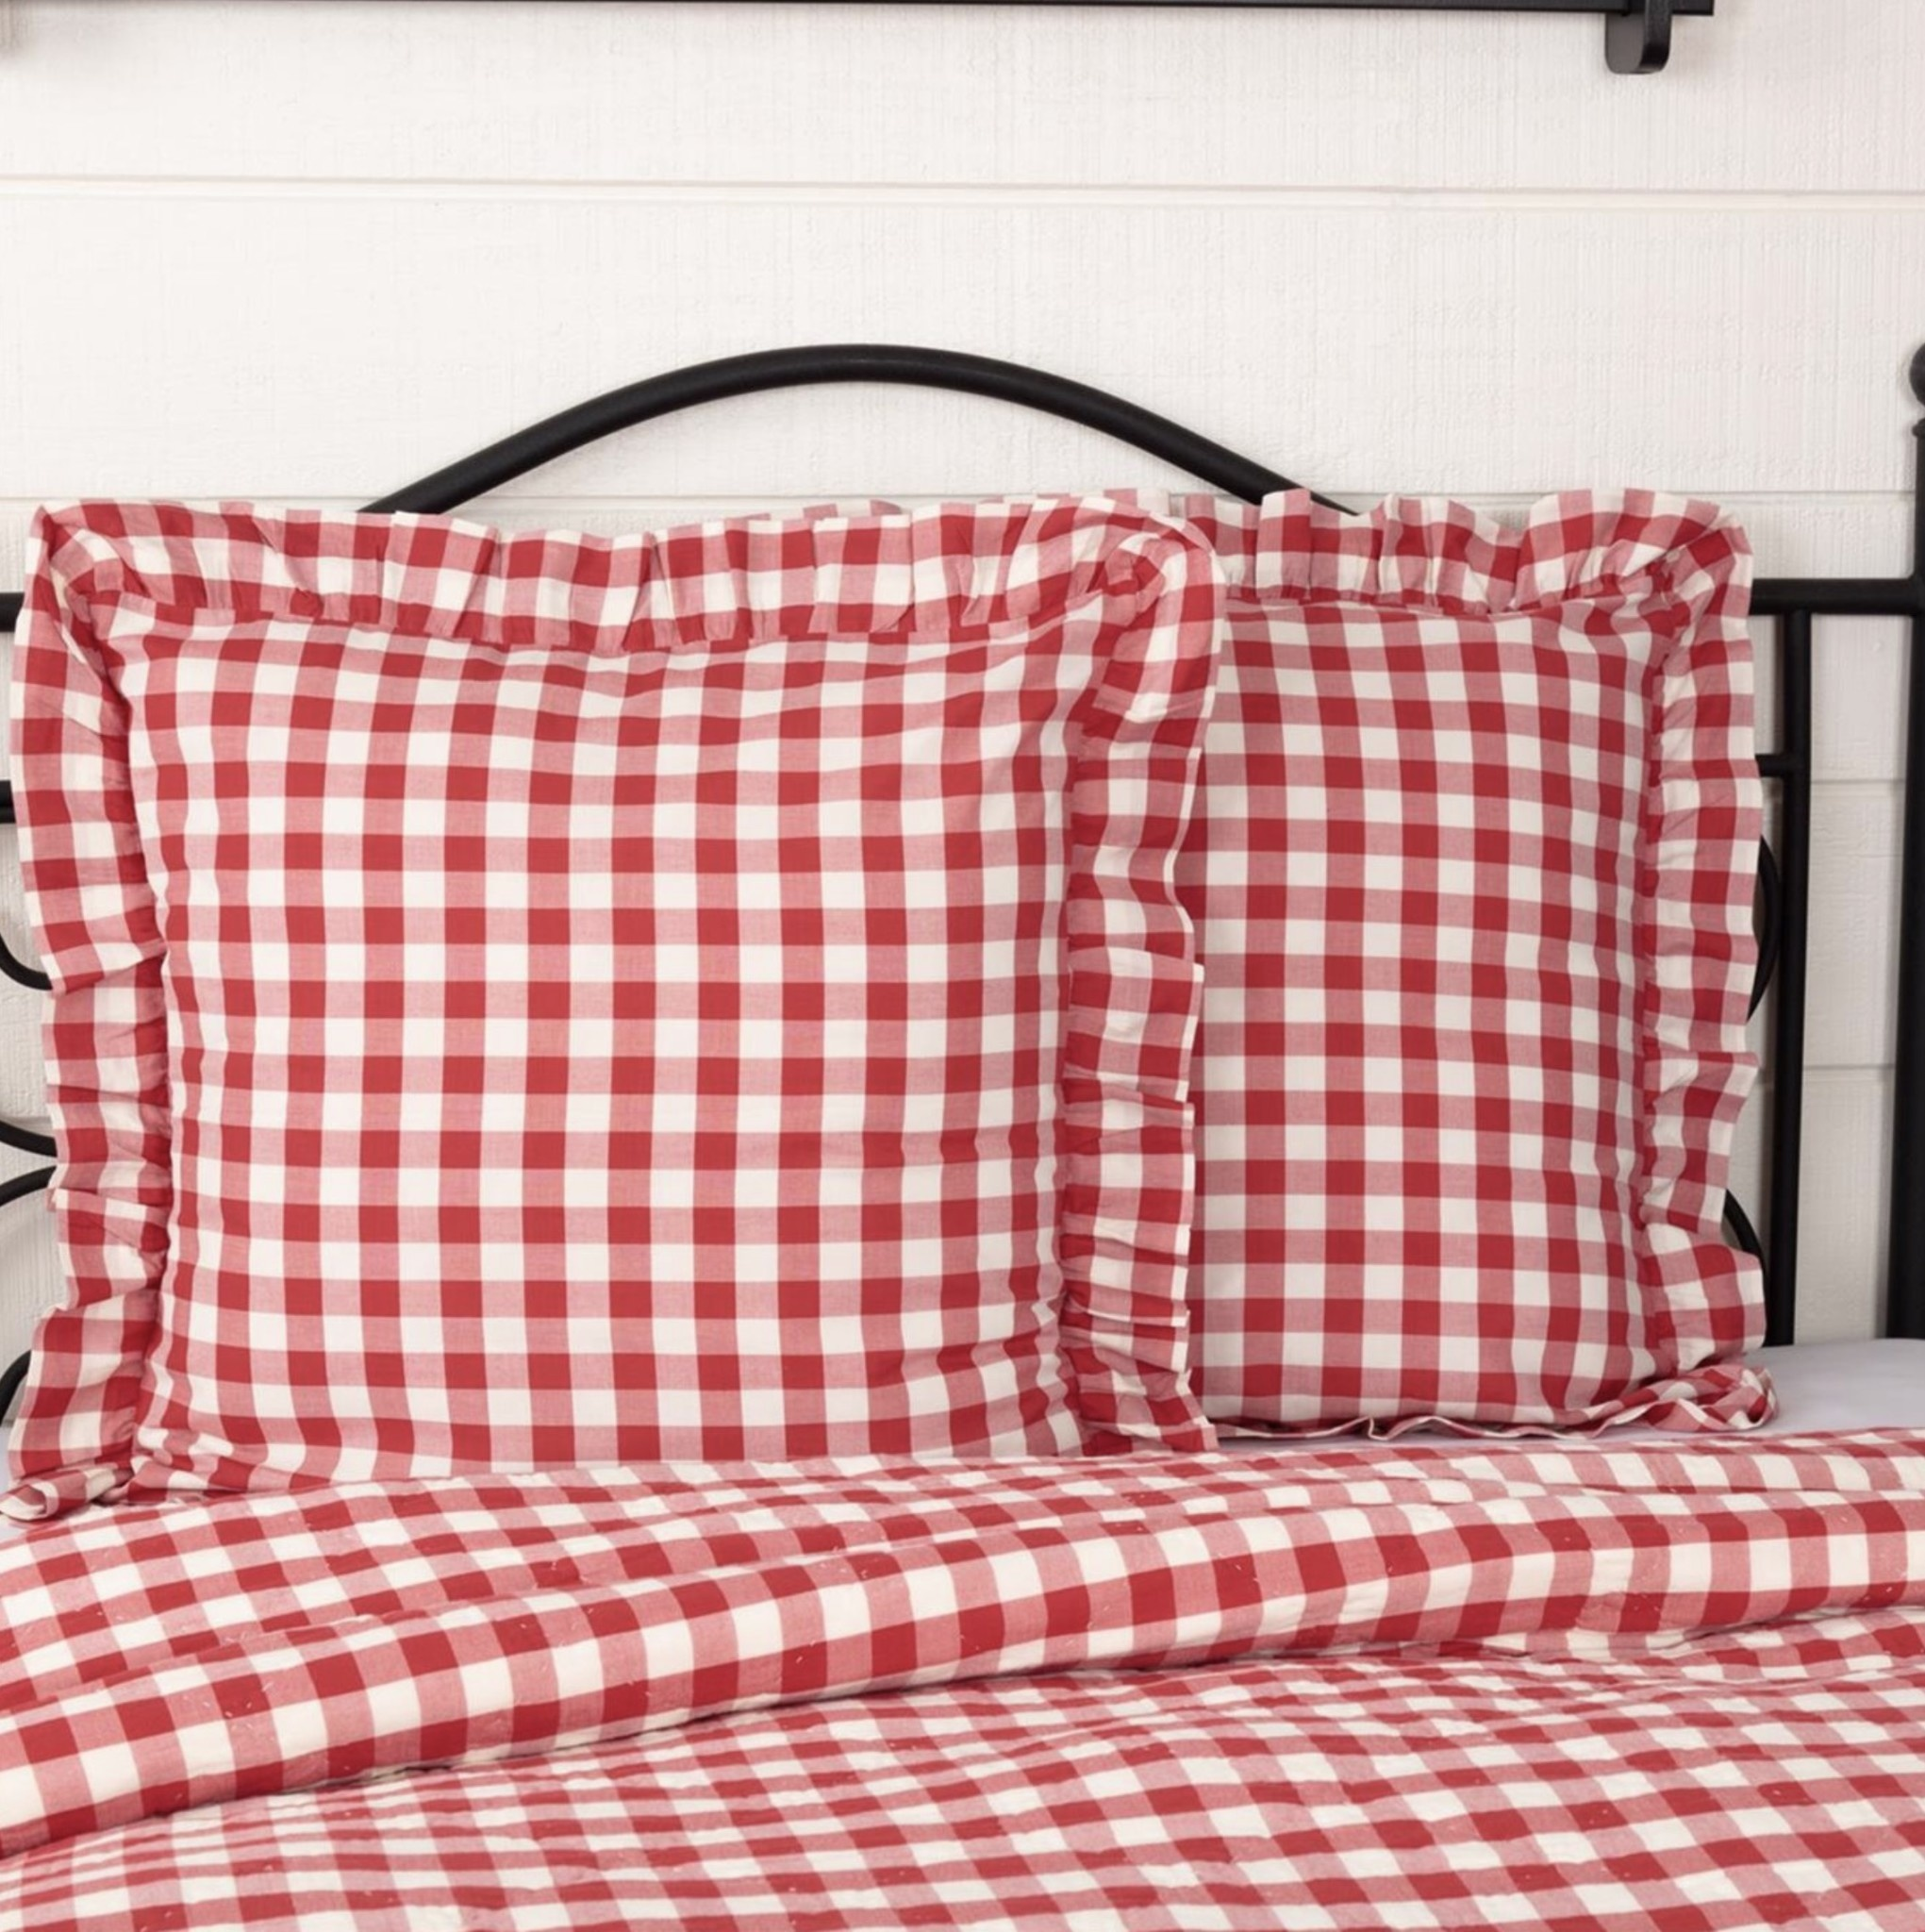 VHC Brands Annie Buffalo Red Check Fabric Euro Sham 26x26